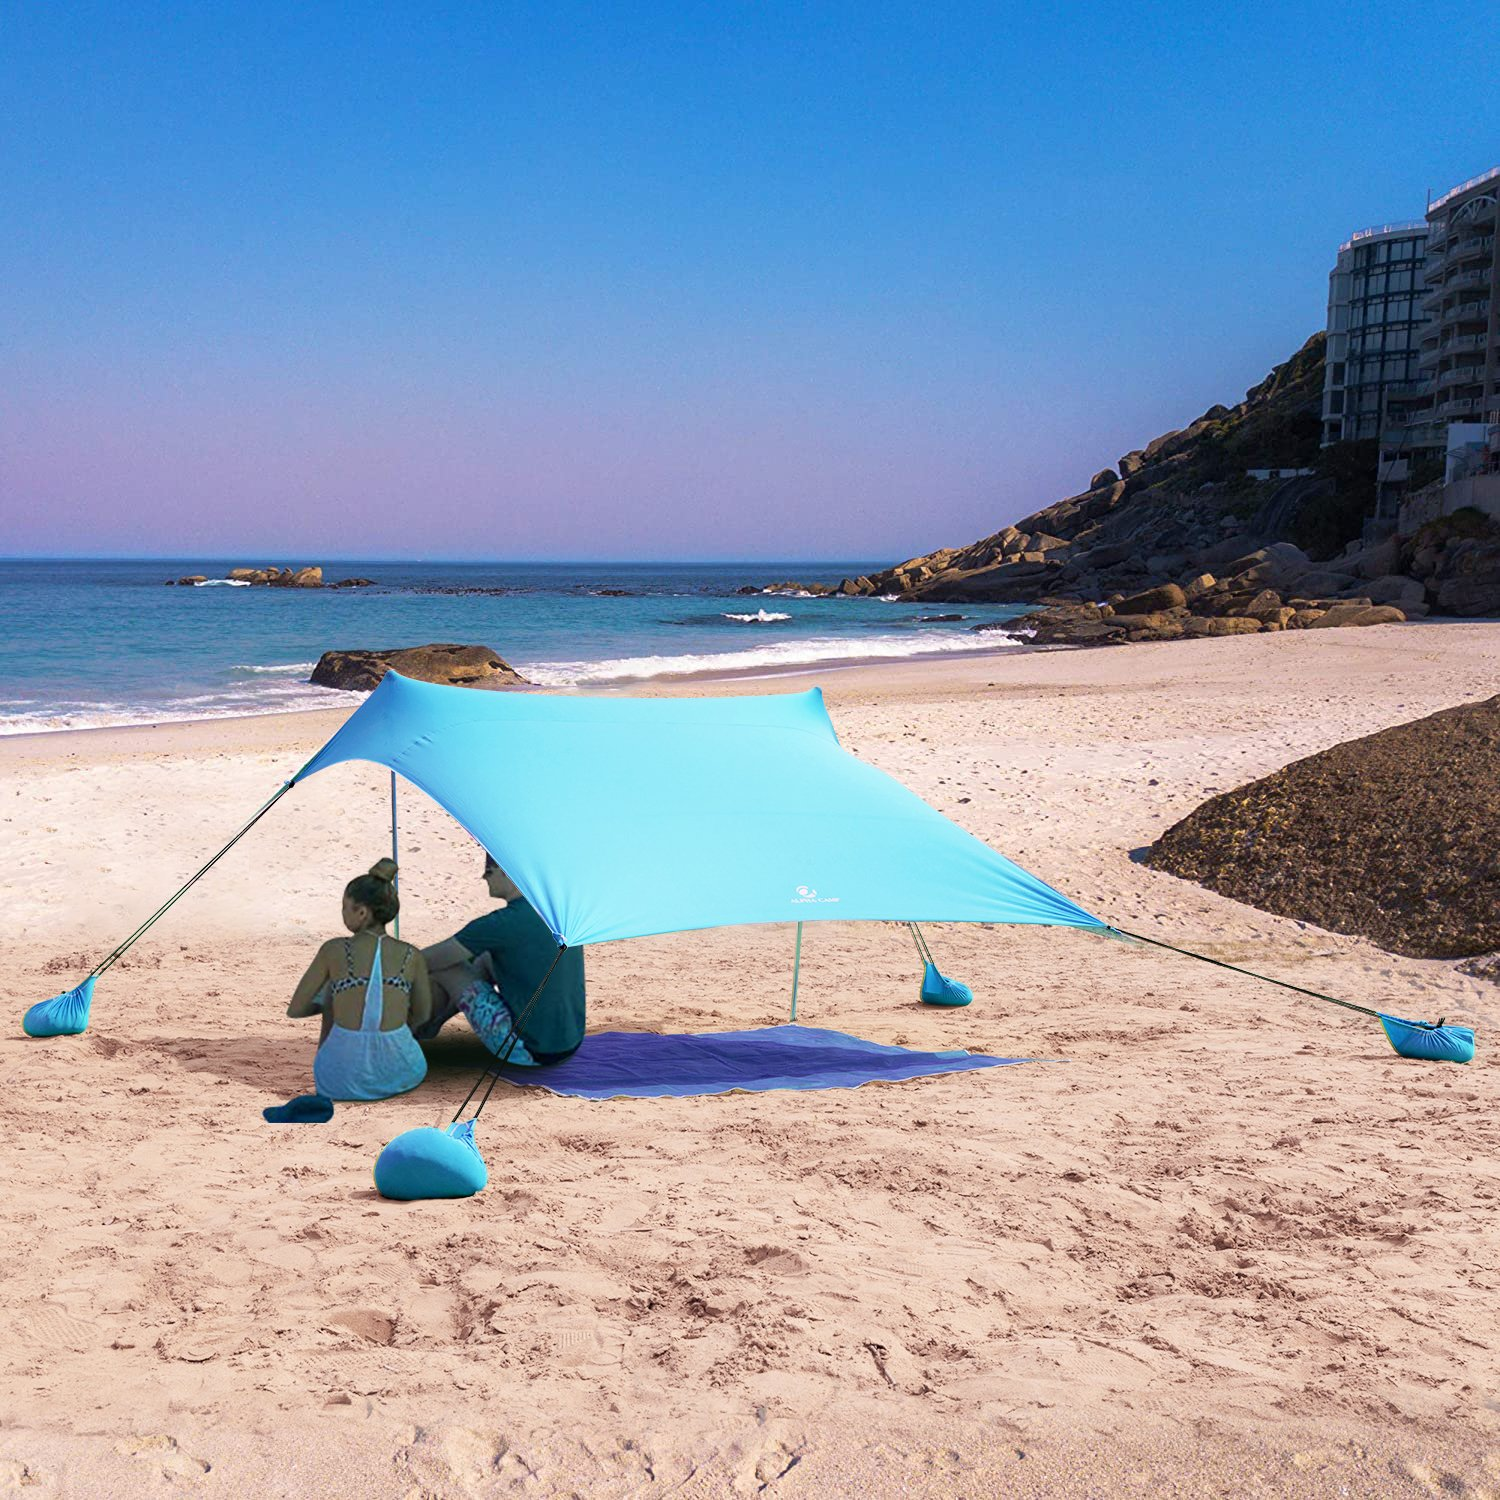 Studio Beach Shade Sun Protection Beach Tent! .50 with free shipping at Walmart!